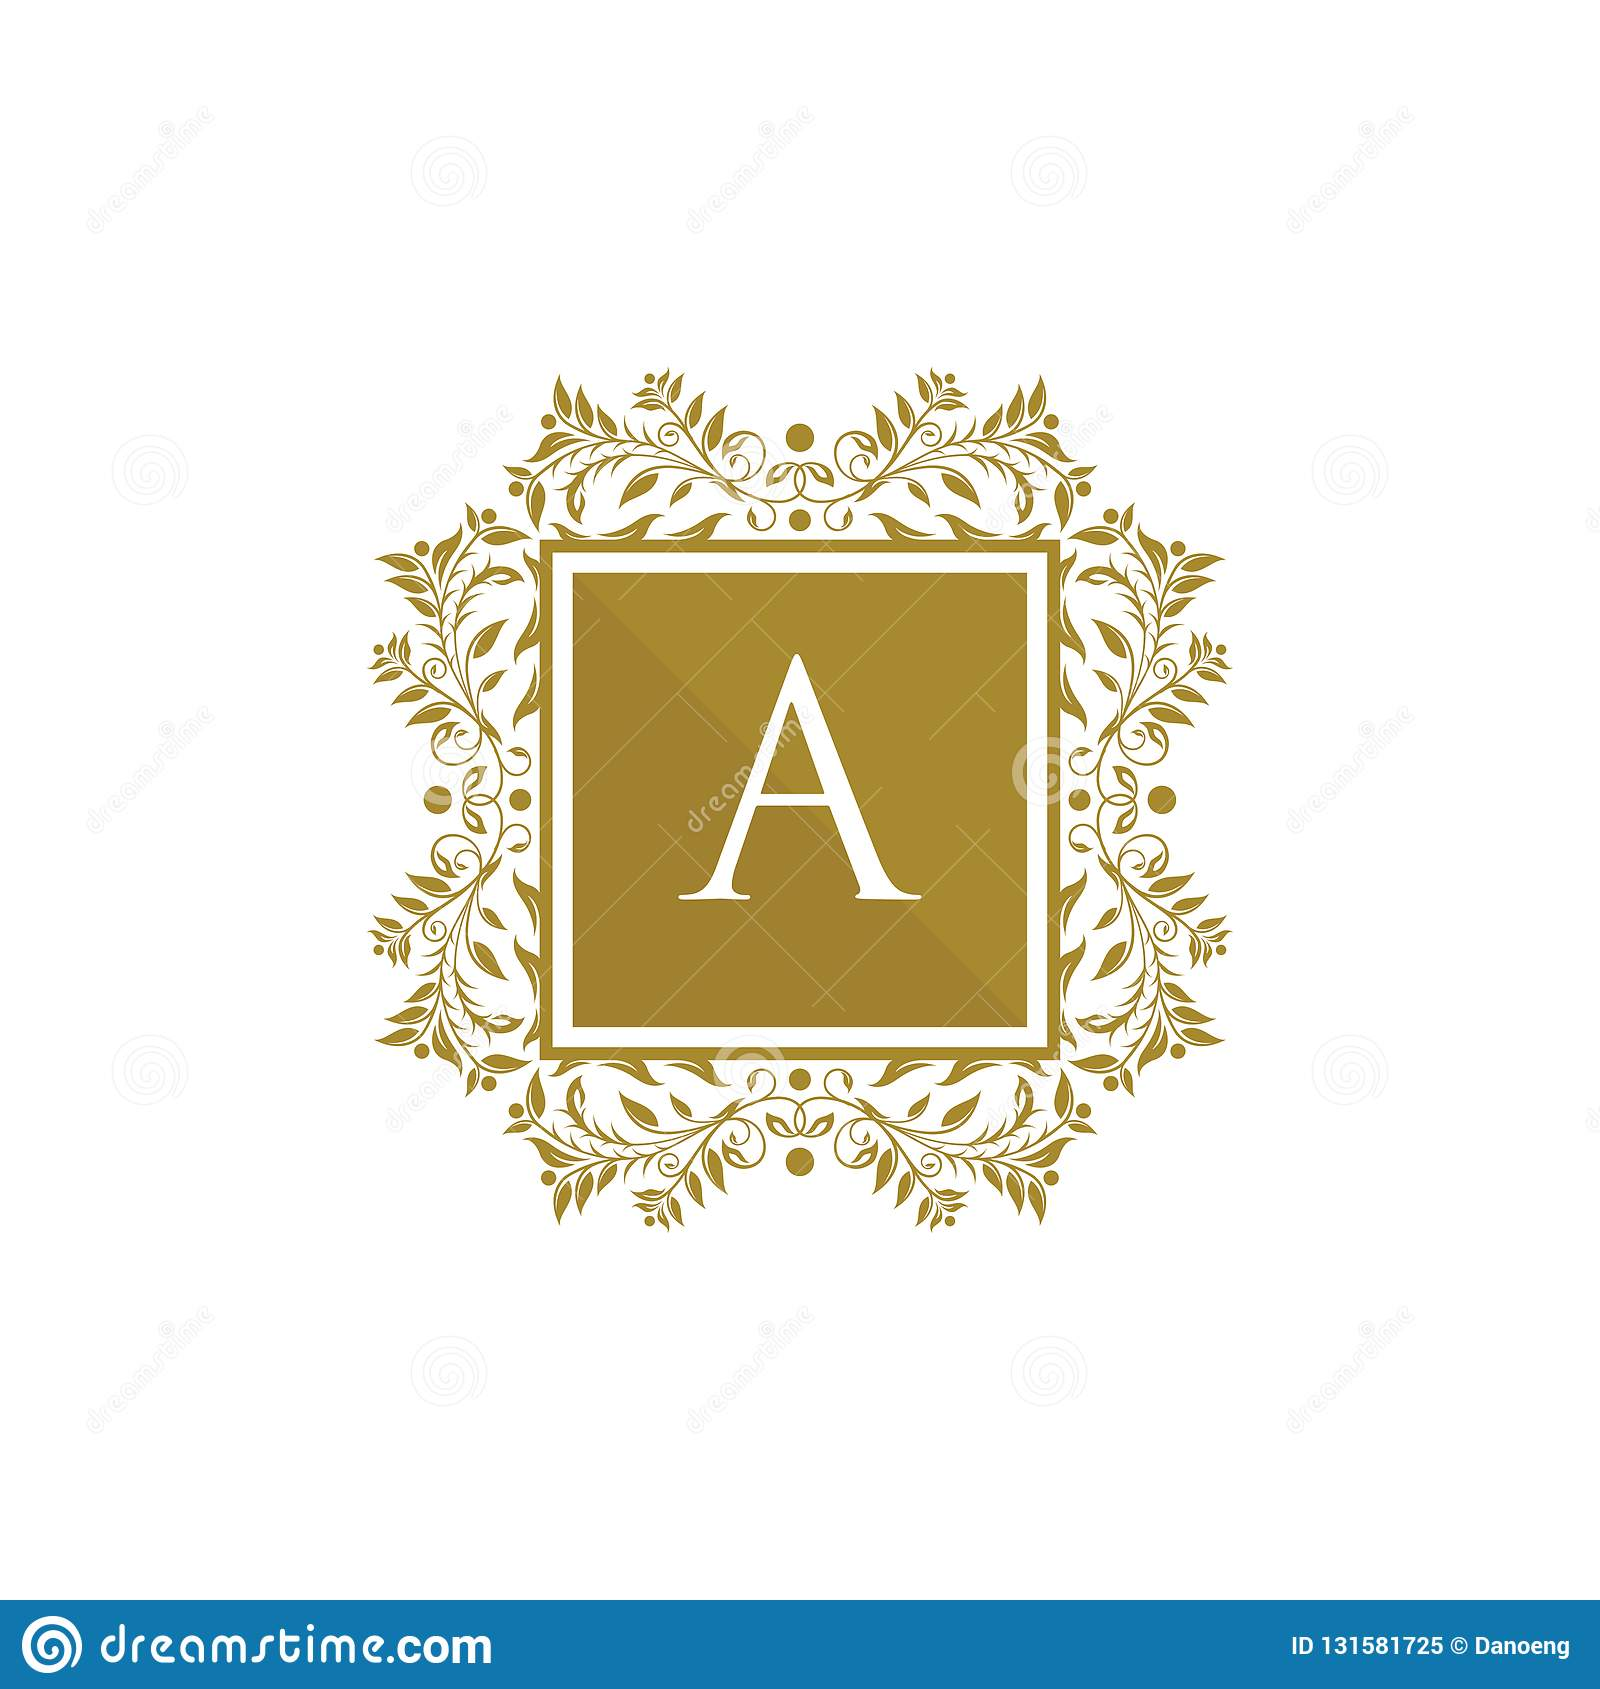 golden royal wedding a letter logo